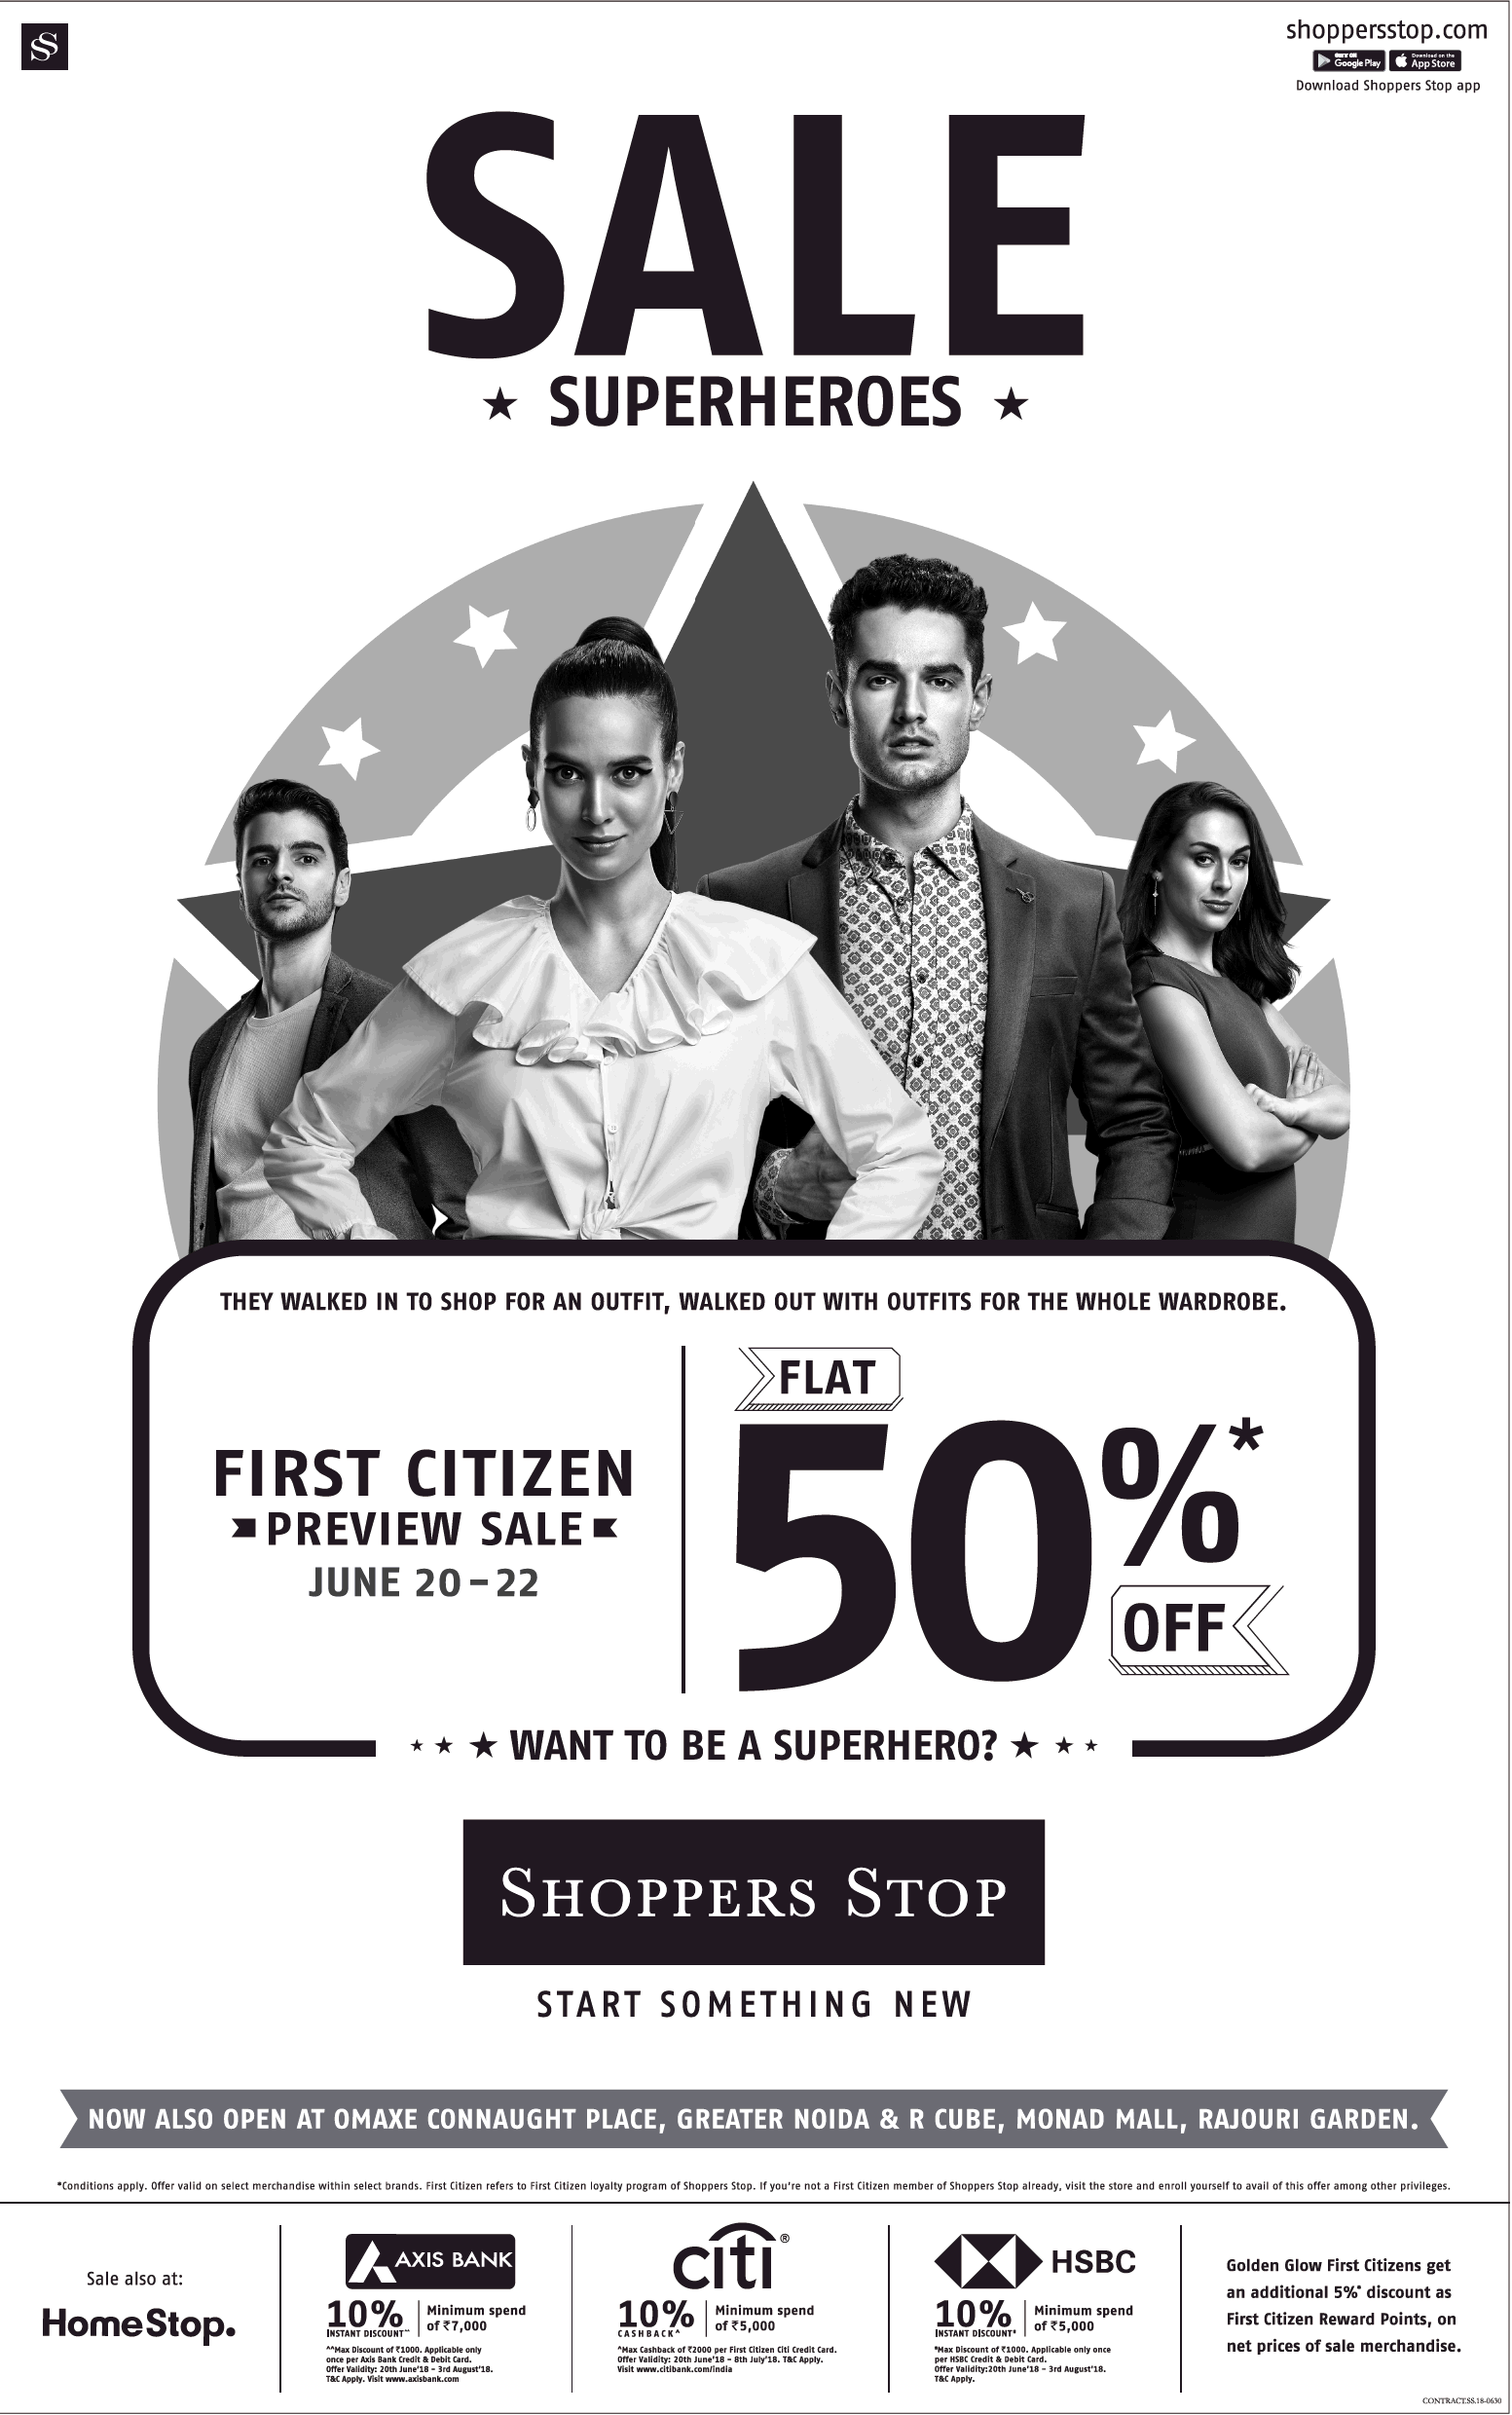 Shoppers Stop - First Citizens Preview Sale